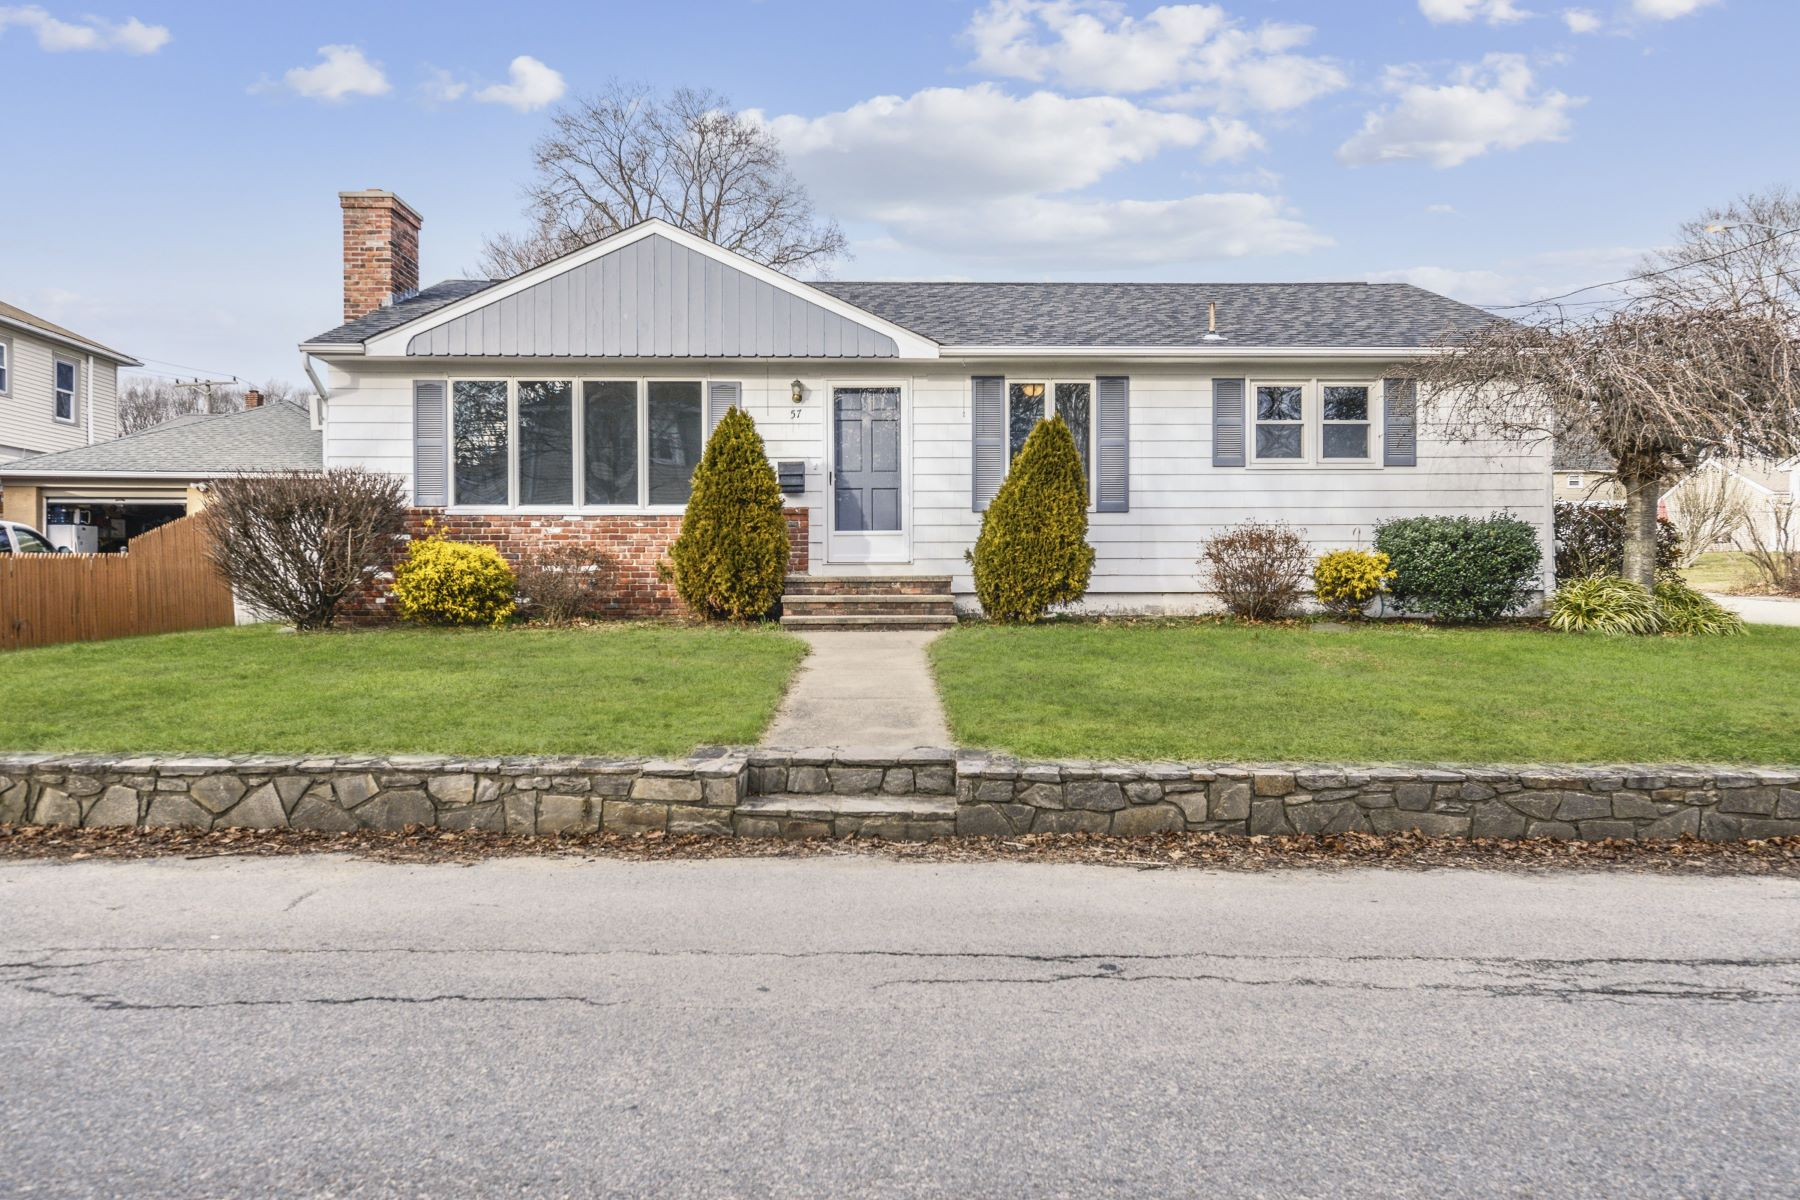 Single Family Homes for Sale at 57 Phillip Street, Coventry, RI Coventry, Rhode Island 02816 United States